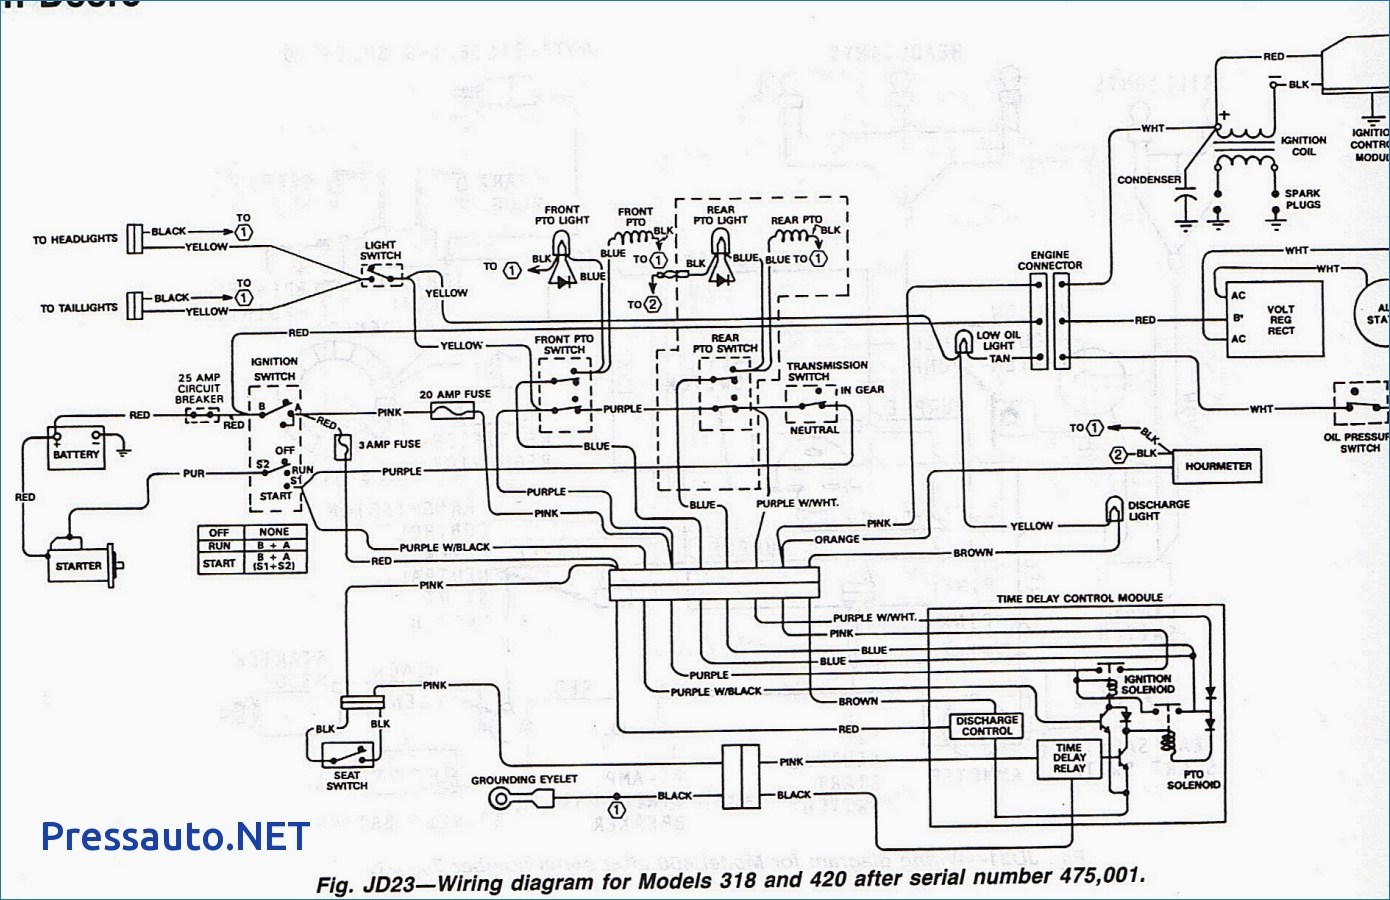 john deere 318 wiring diagram Download-318 ci engine diagram free image about wiring diagram wire rh beinclover co John Deere 112 Electric Lift Wiring Diagram John Deere 112 Electric Lift 11-a